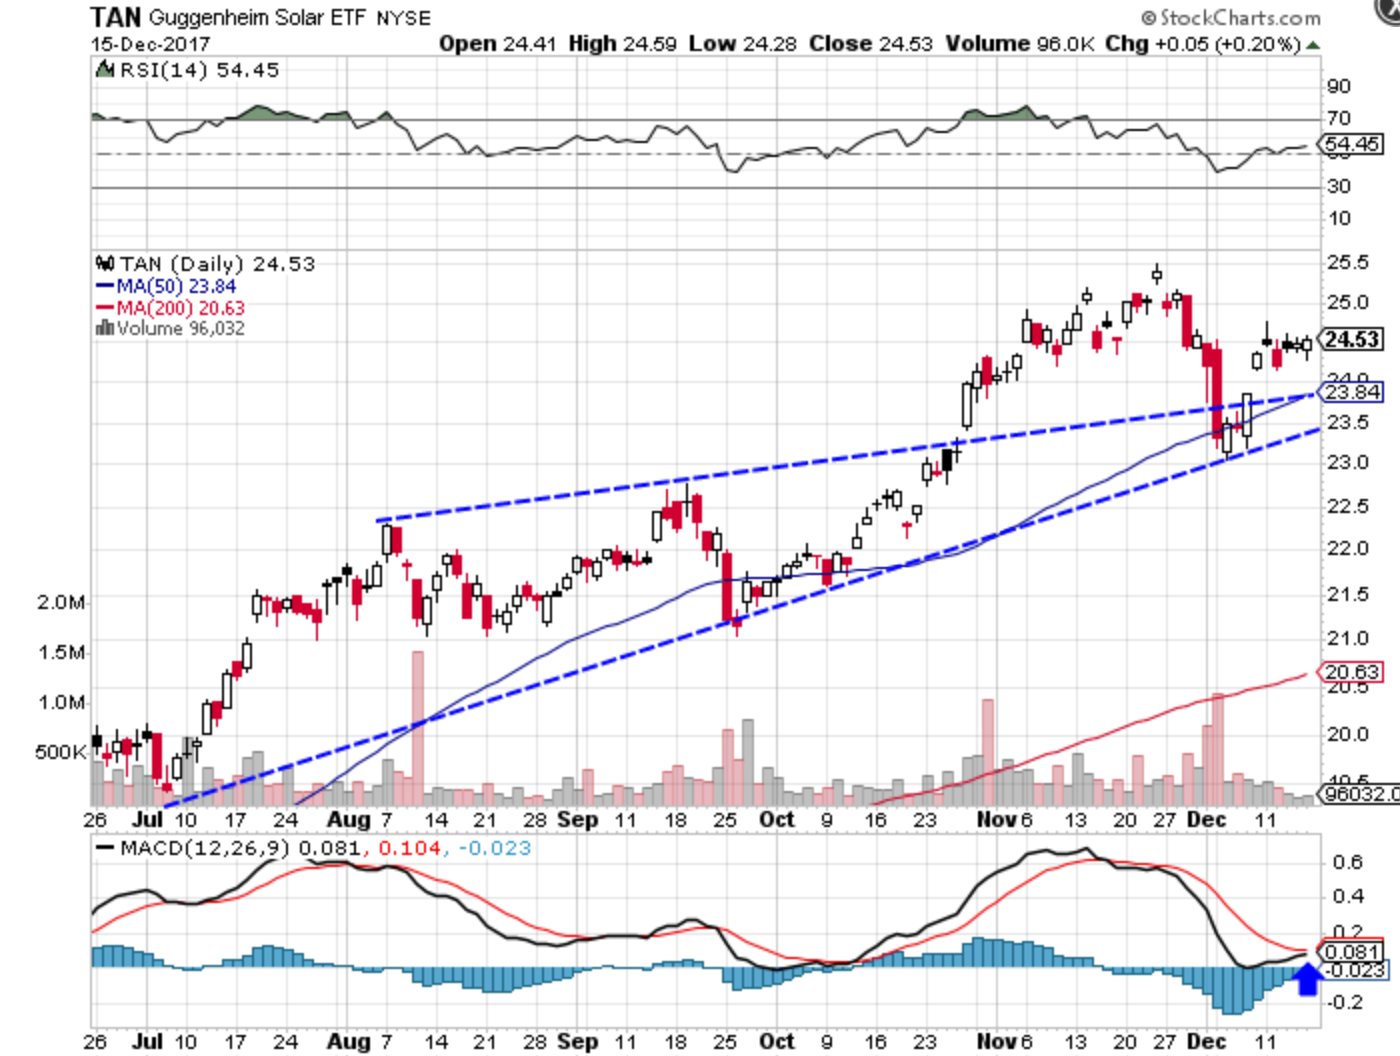 Technical chart showing the performance of the Guggenheim Solar ETF (TAN)